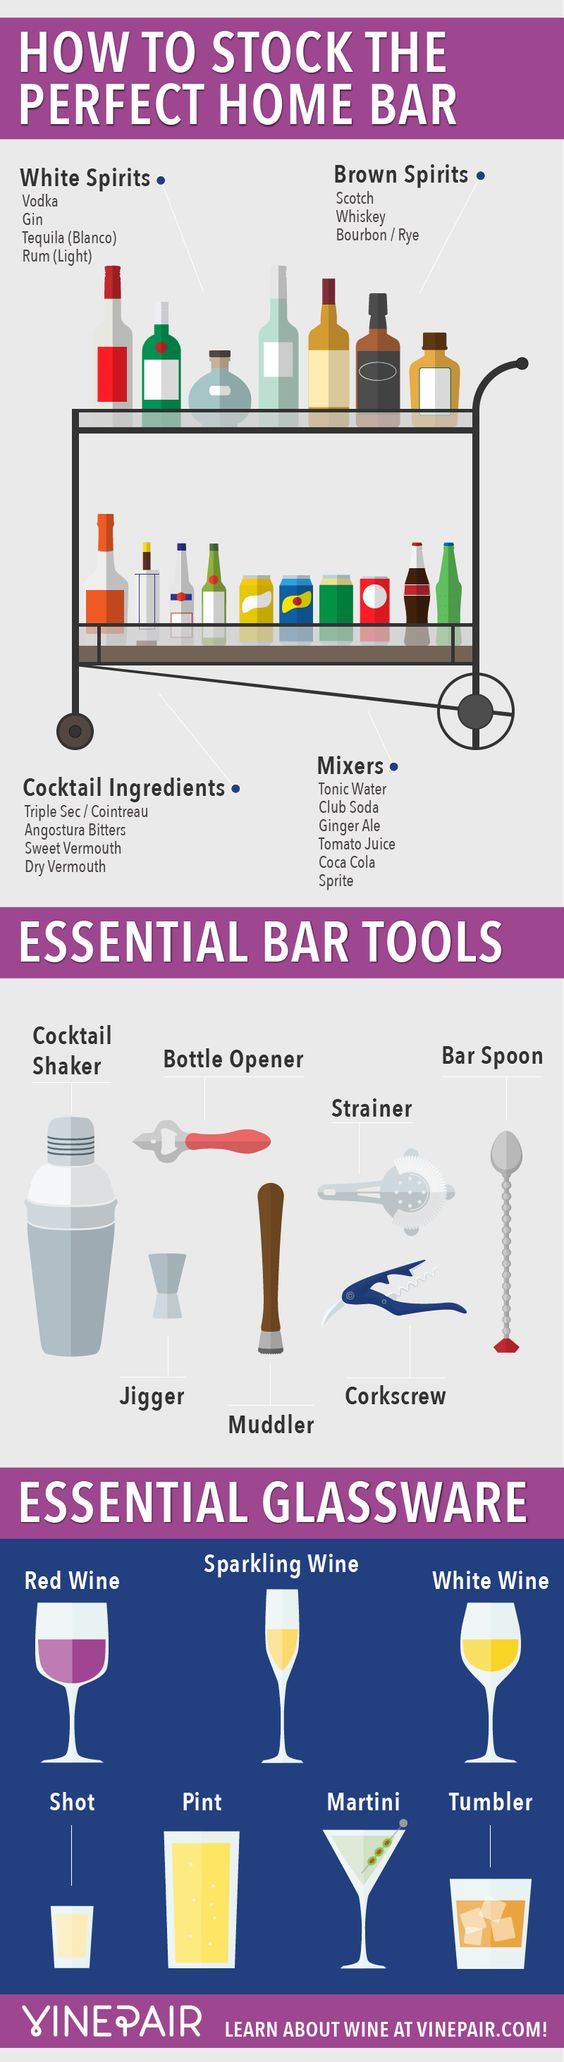 Calling all wine enthusiasts! Here's a perfect home bar you wouldn't want to miss this on your bucket list this 2015! Check out this infographic of basic spirits, mixers, barware and glassware that every home bar should have.